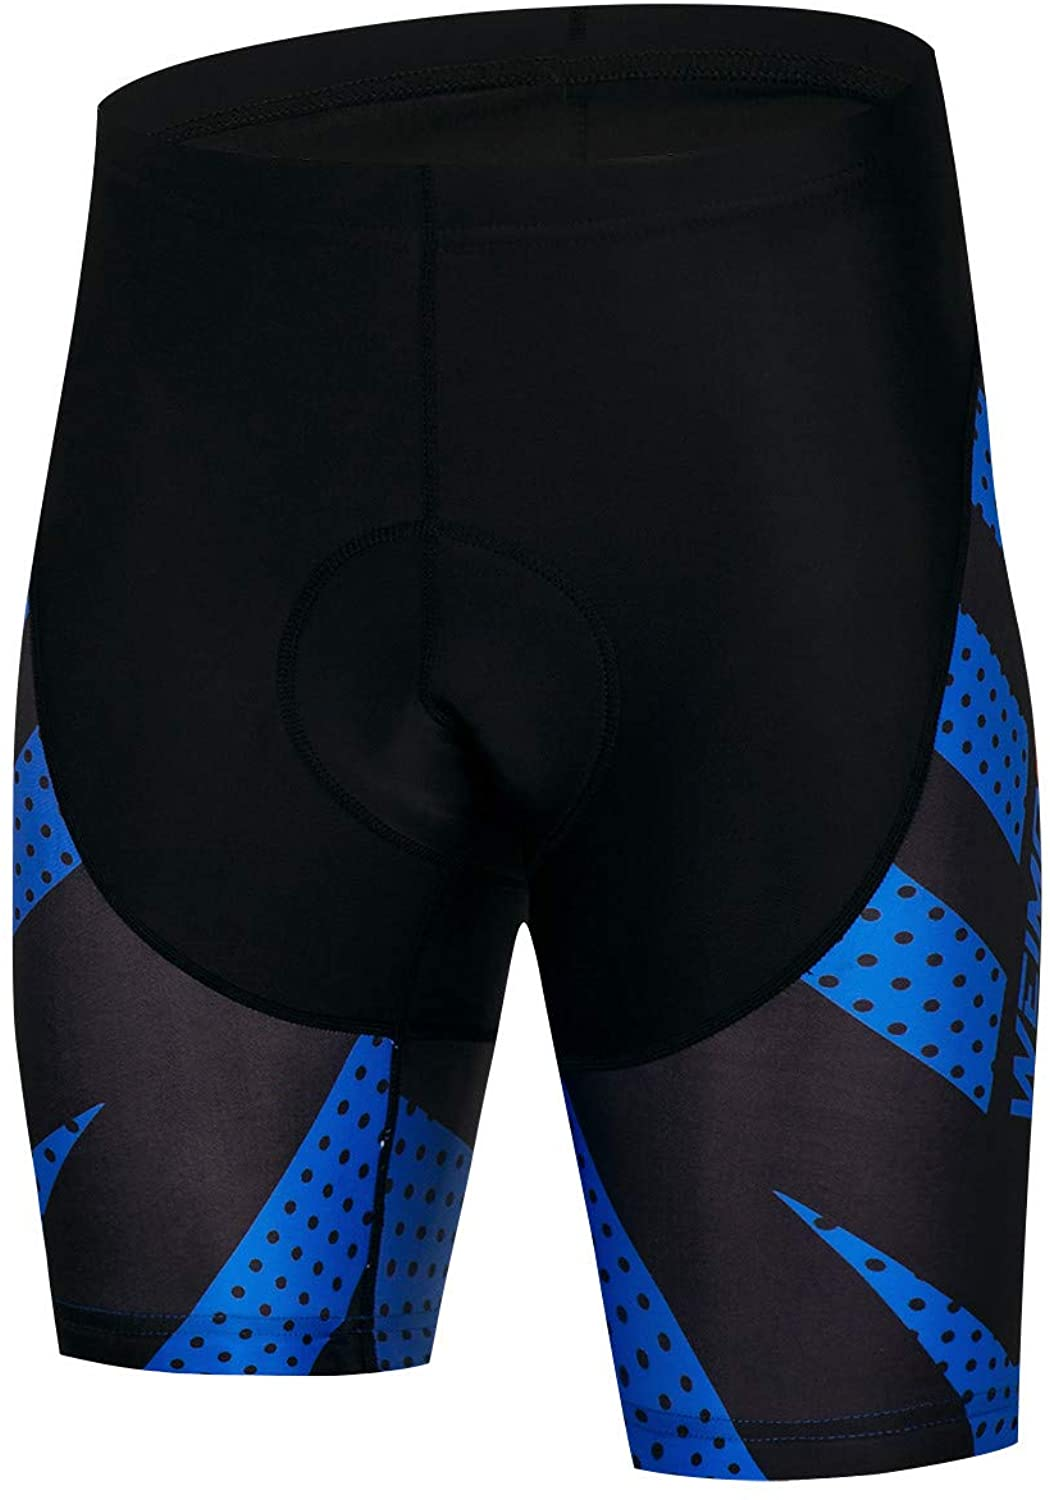 JPOJPO Bike Shorts Men's Cycling Underwear with 5D Padded Tight,Shockproof,Reflective S-3XL